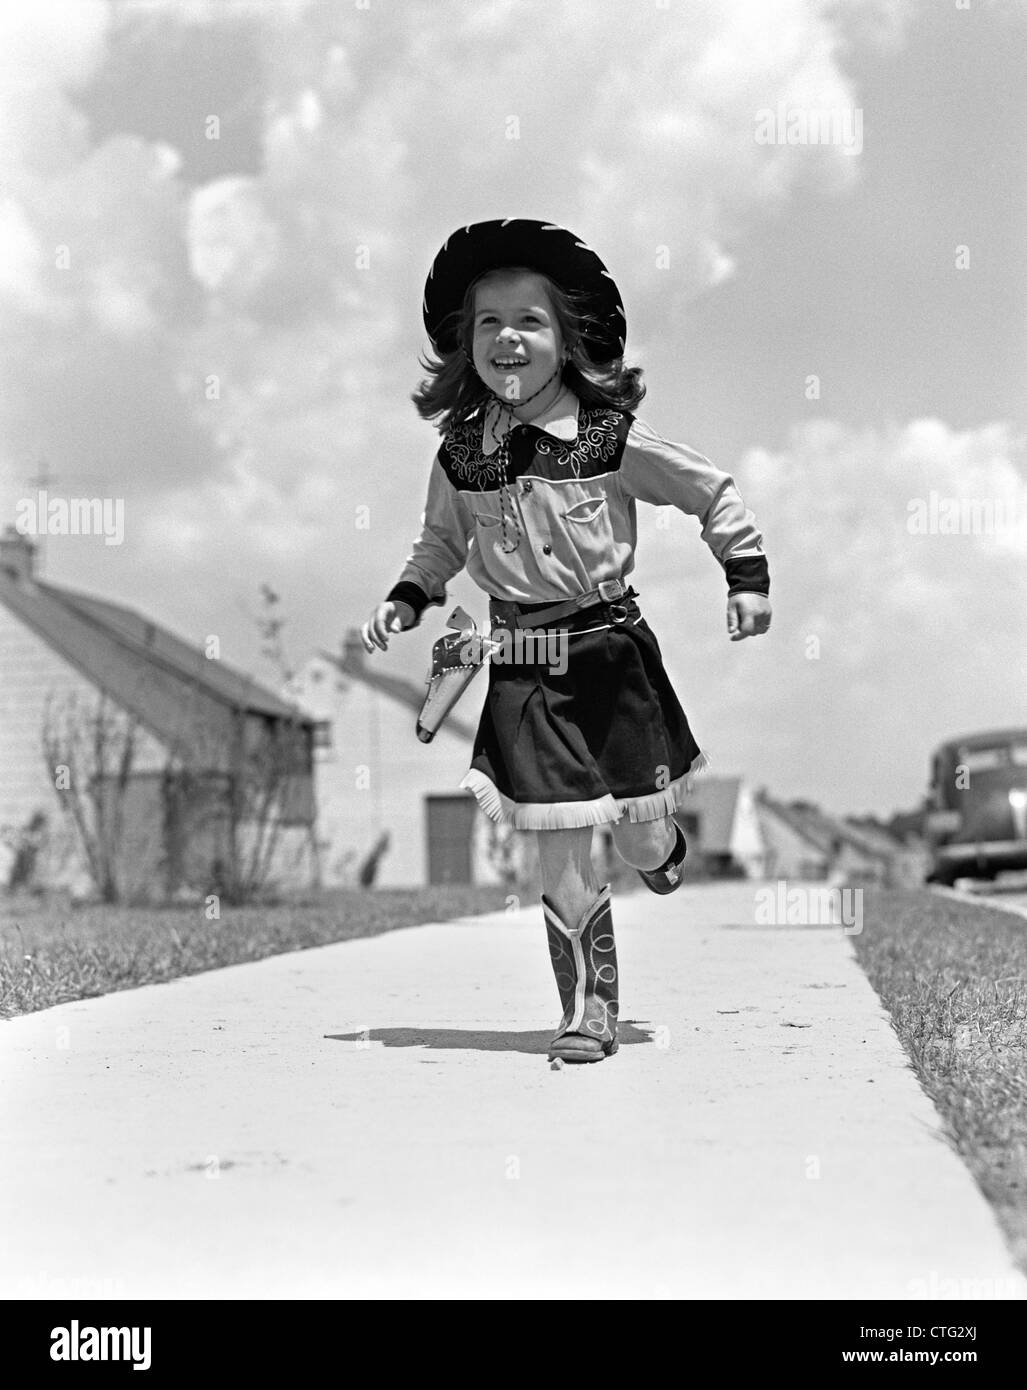 1950s GIRL IN COWGIRL OUTFIT RUNNING ON SIDEWALK TOWARDS CAMERA - Stock Image